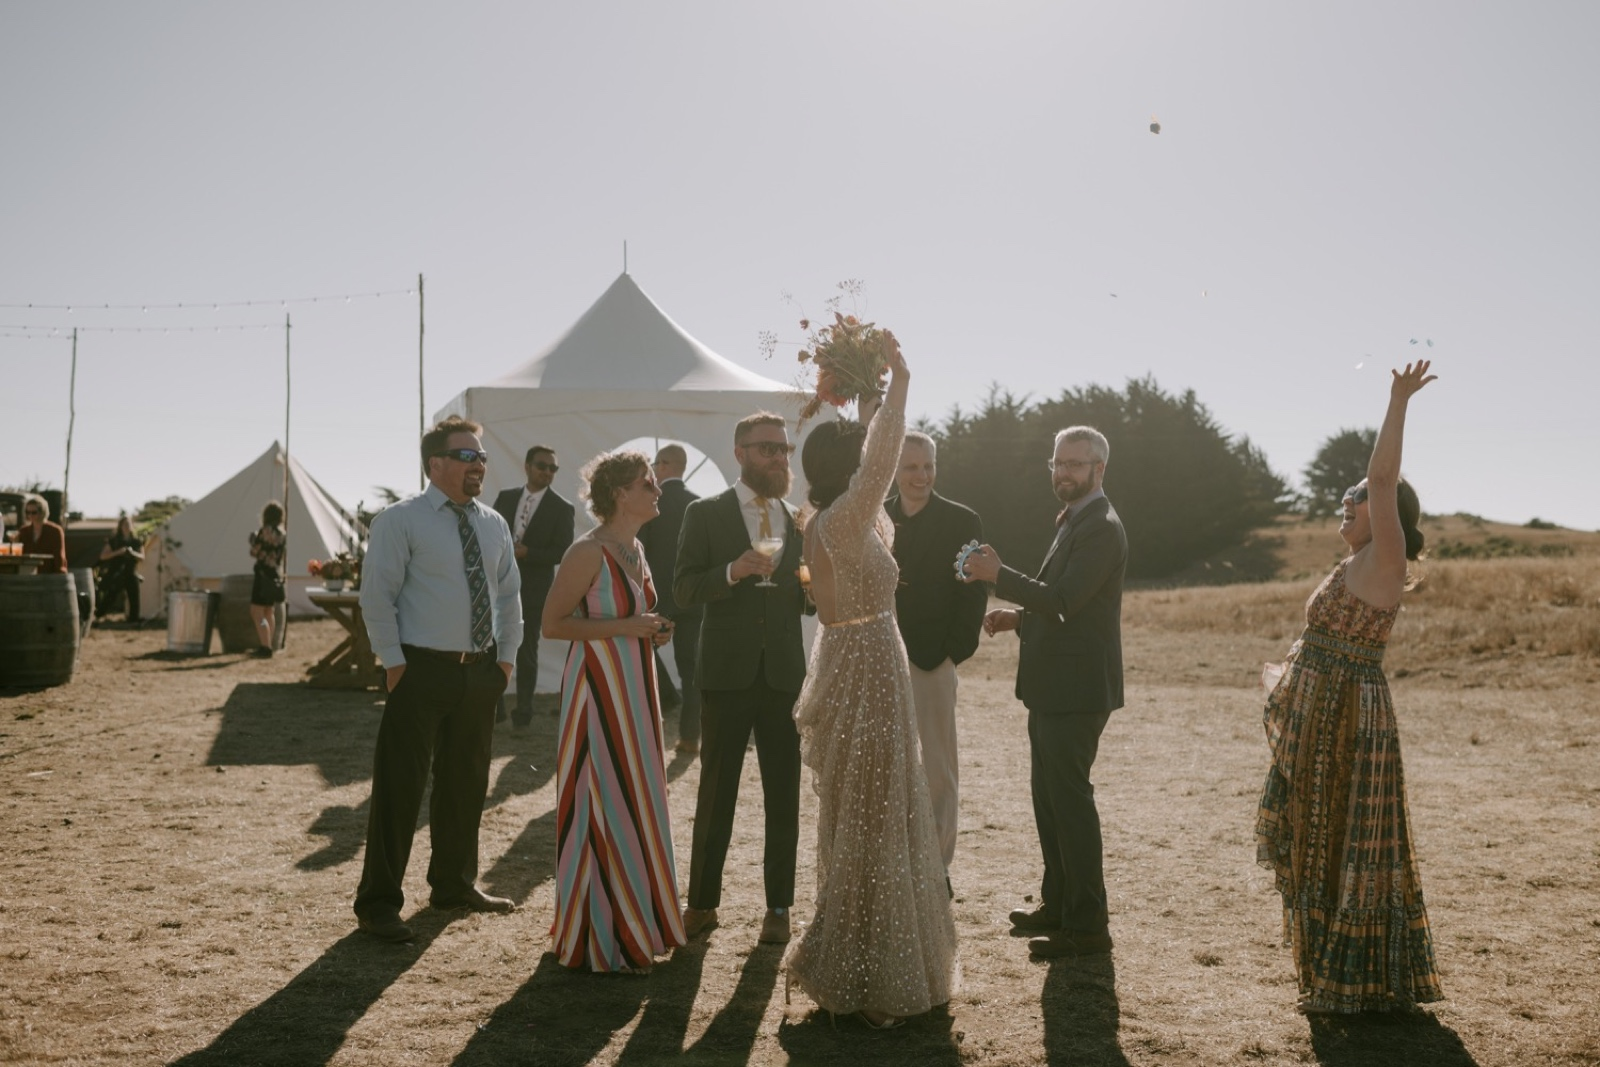 Mendocino_Wedding_Cuffeys_Cove096.JPG